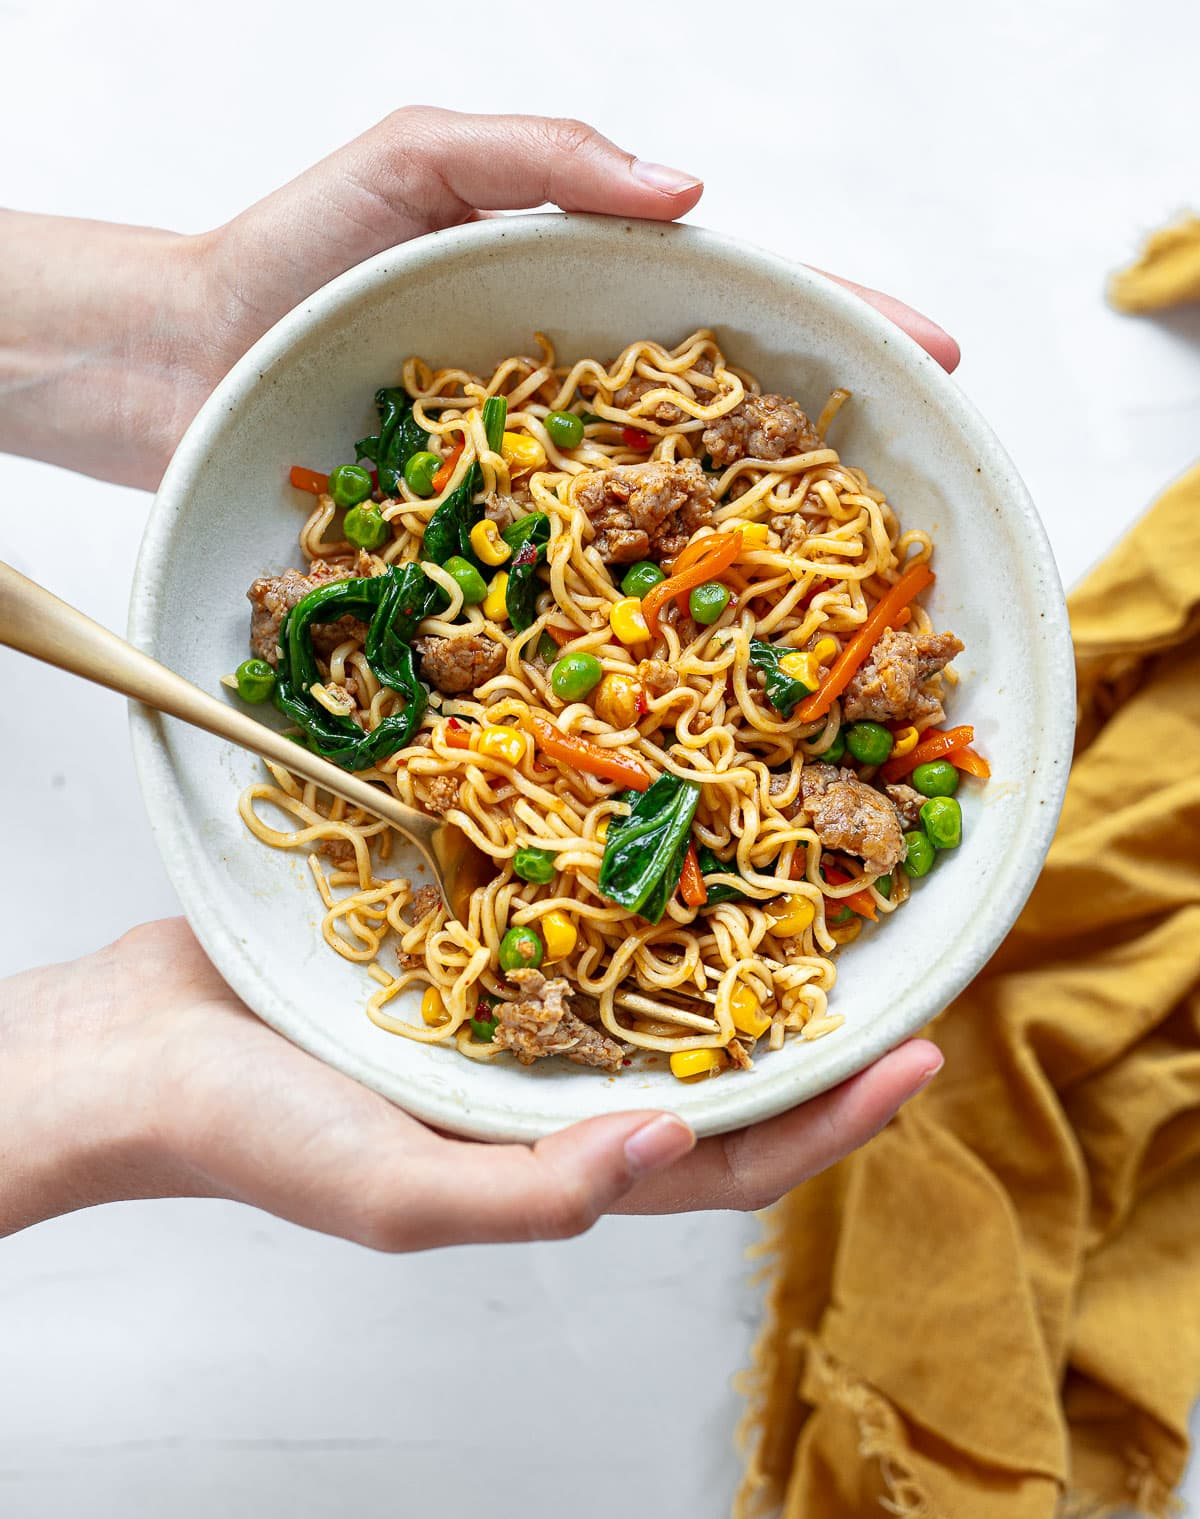 A white bowl with a gold serving fork filled with ramen noodle stir-fry mixed with peas, carrots, corn and spinach.